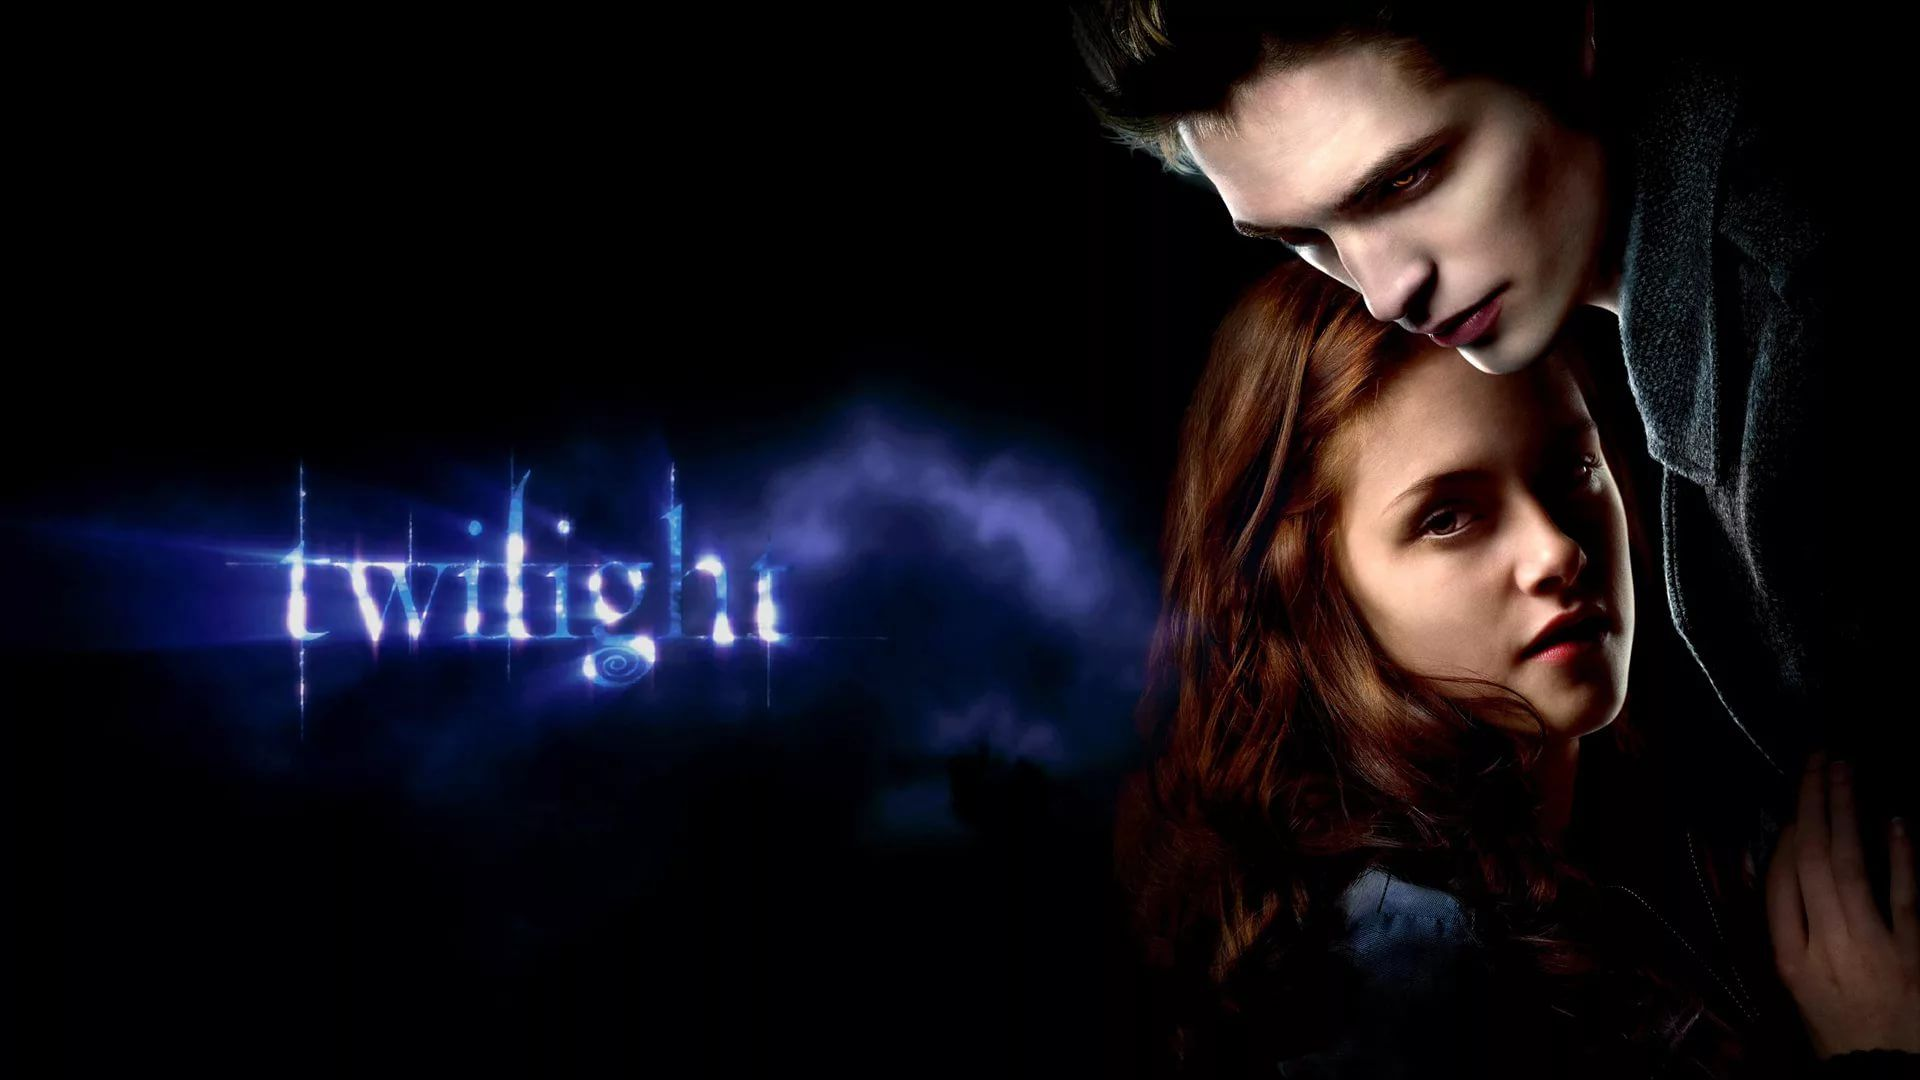 Twilight Saga Cool HD Wallpaper